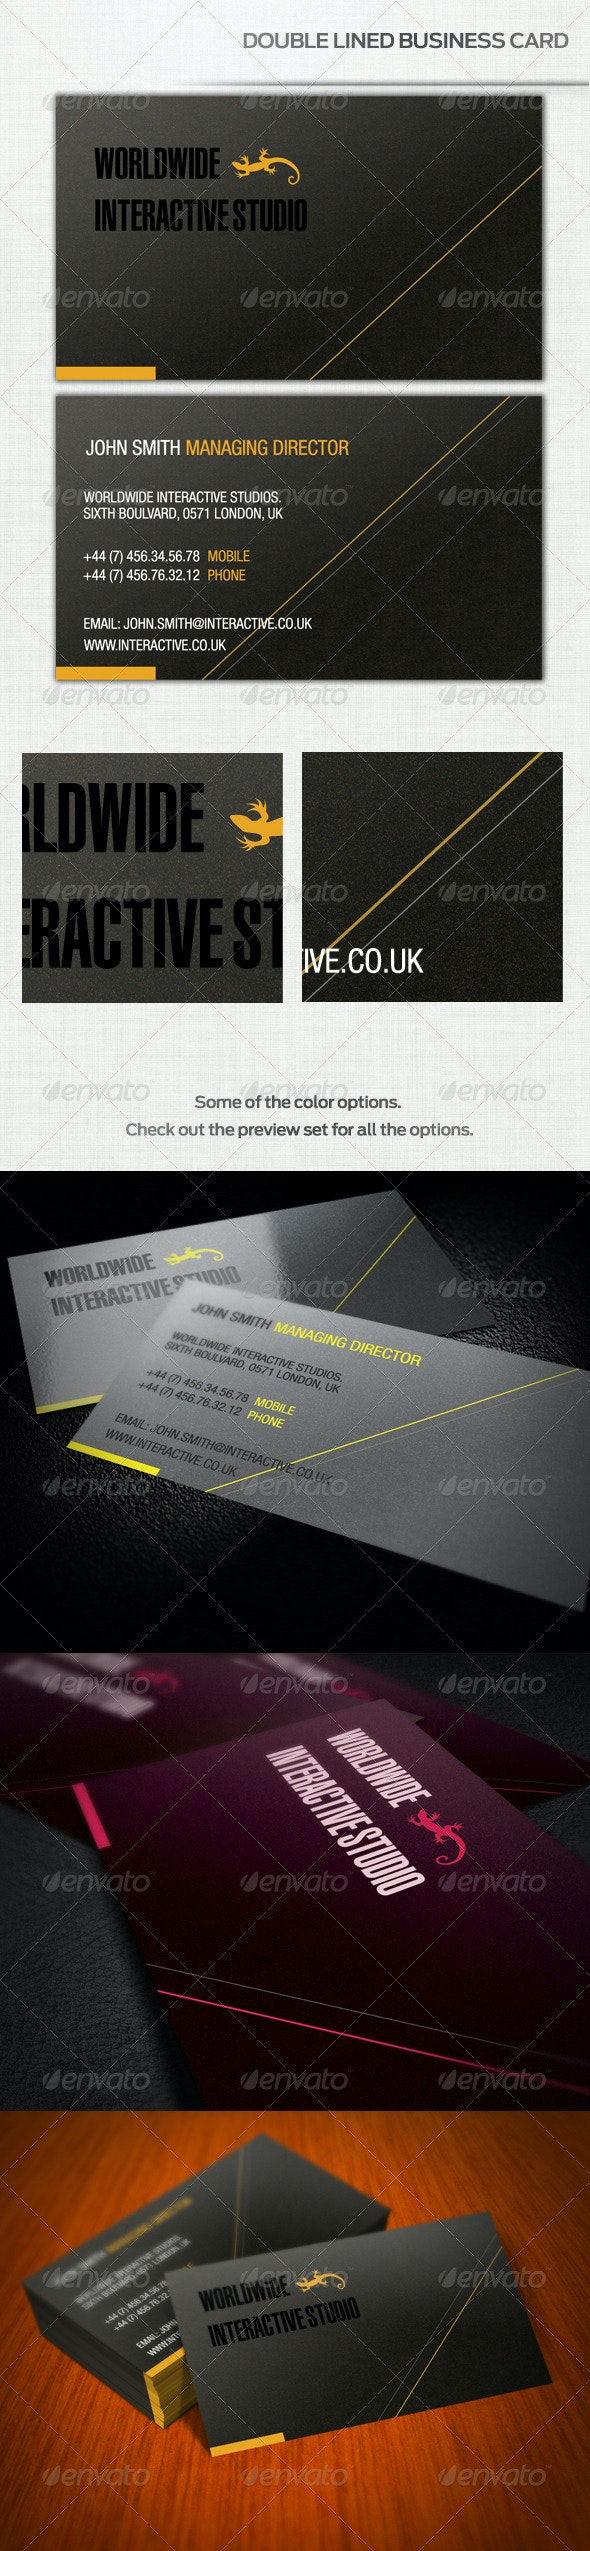 Double Lined Business Card [4 Colors] - Corporate Business Cards